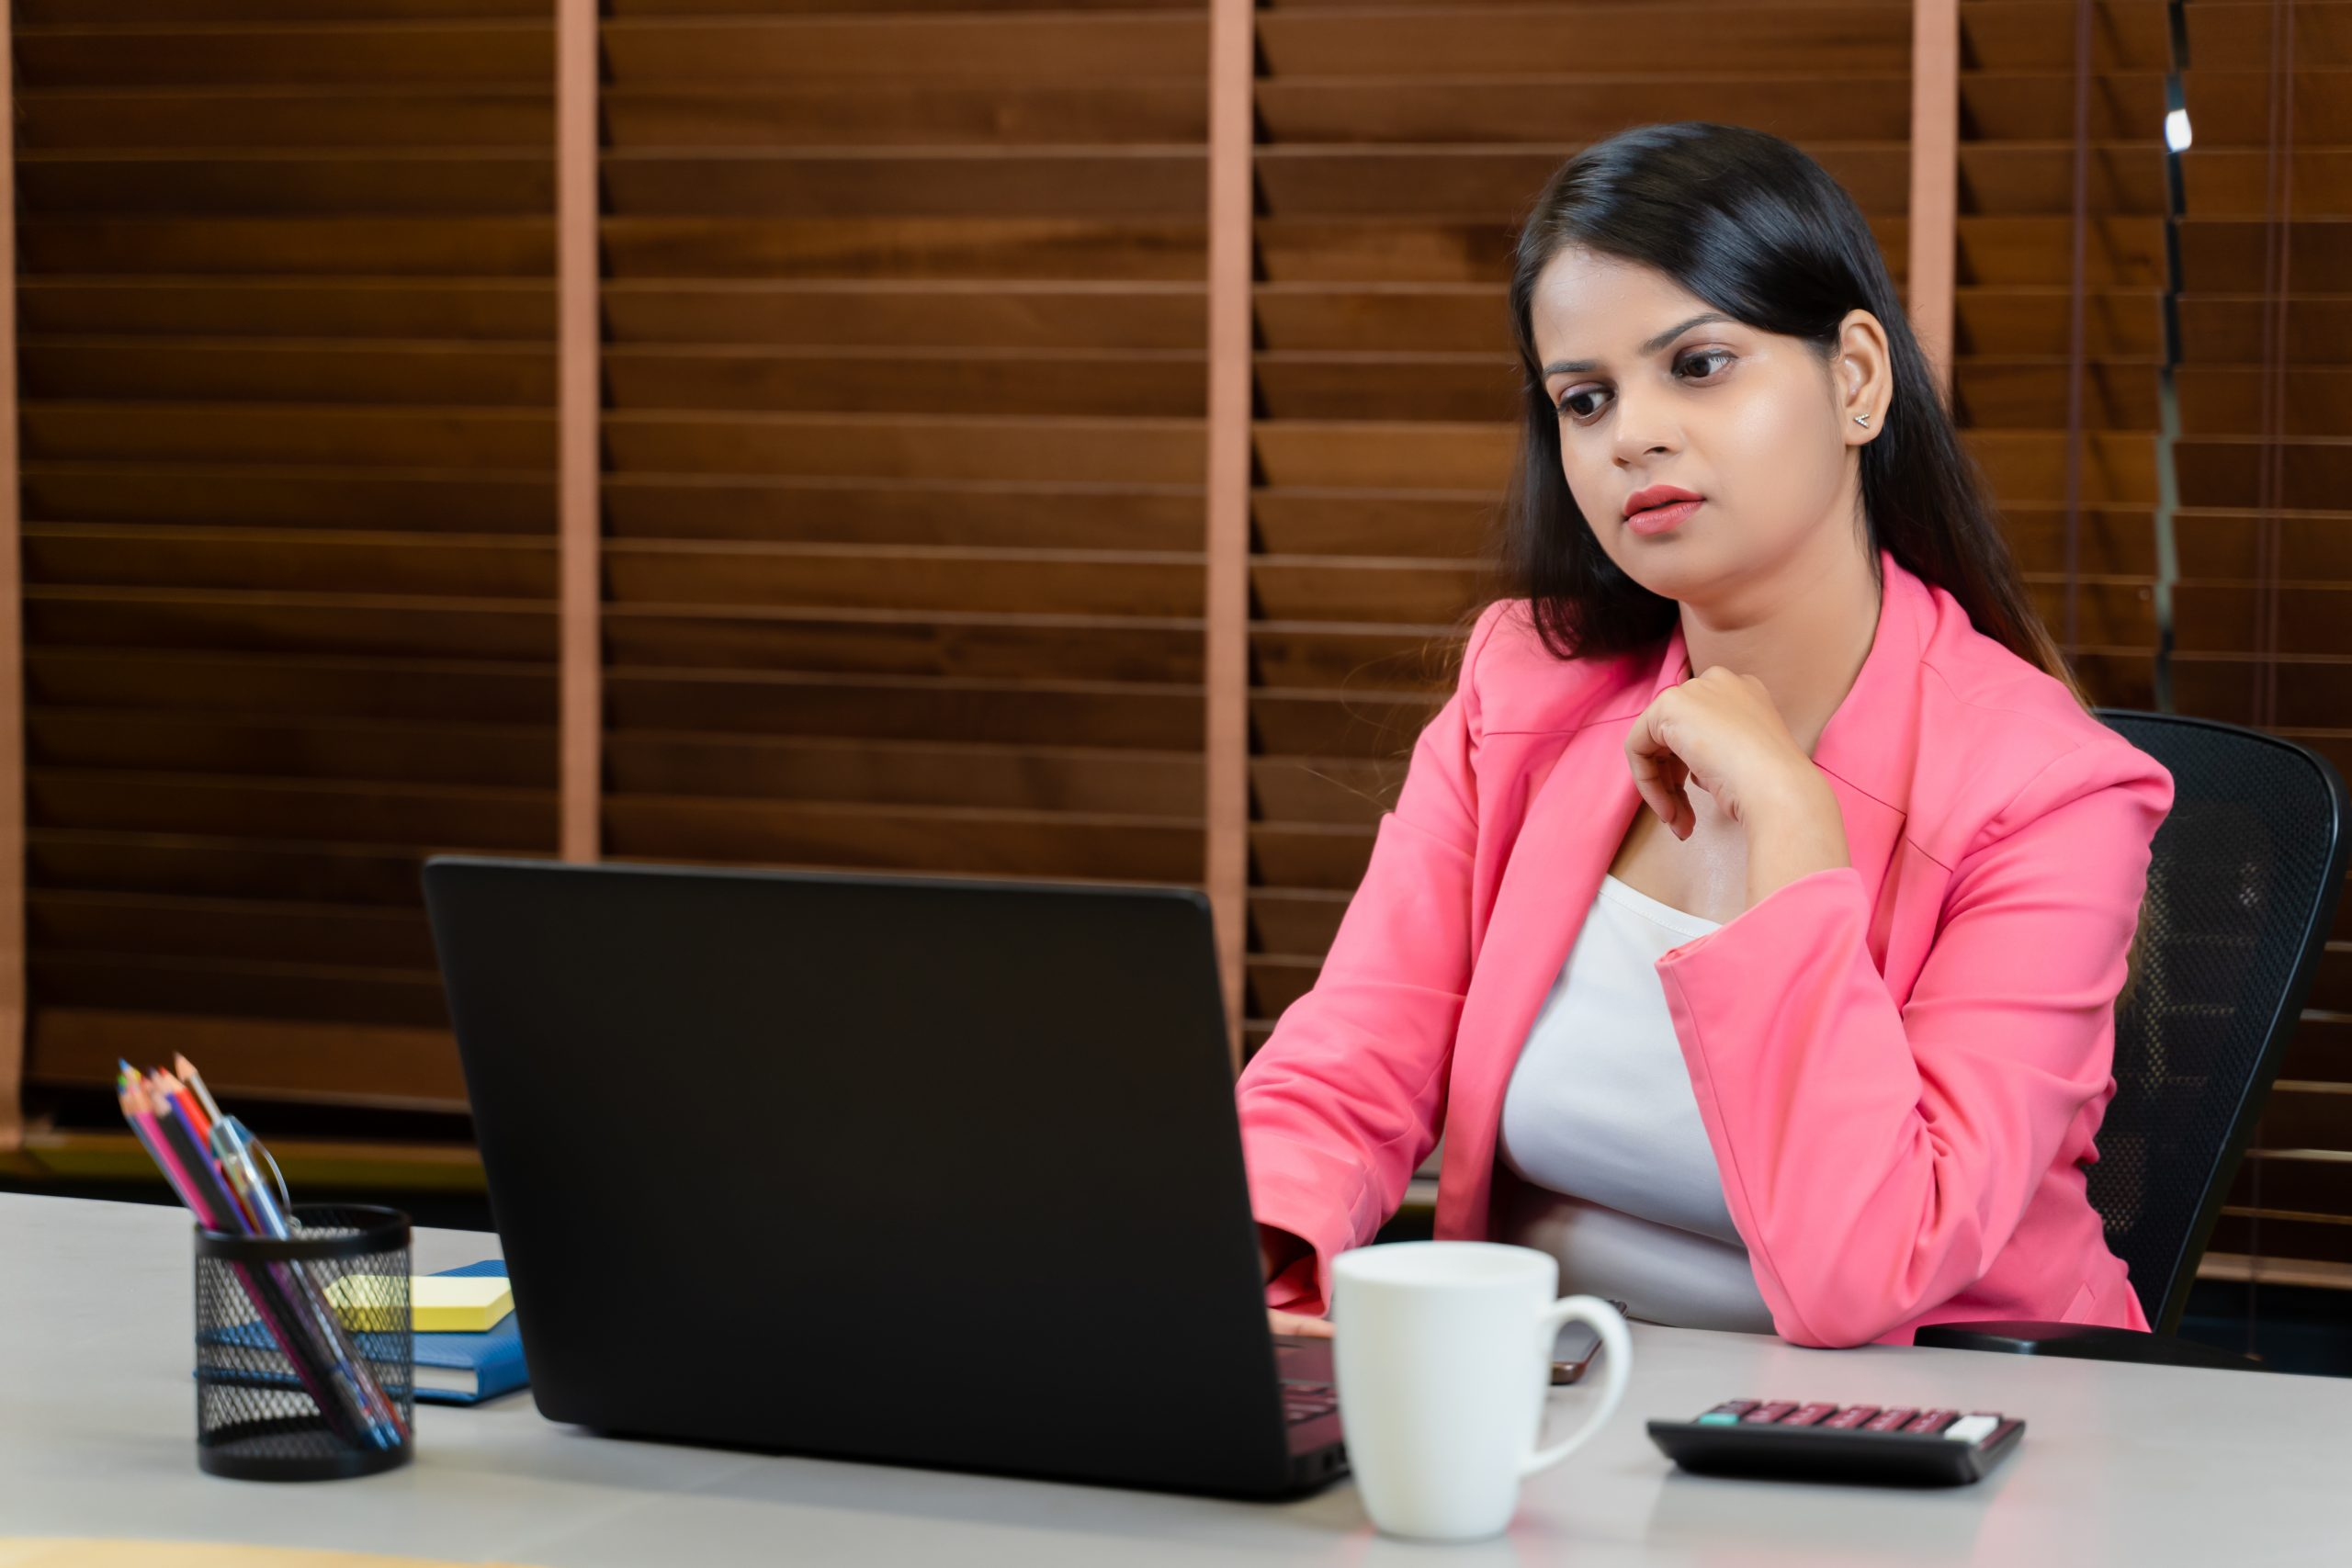 Businesswoman working seriously